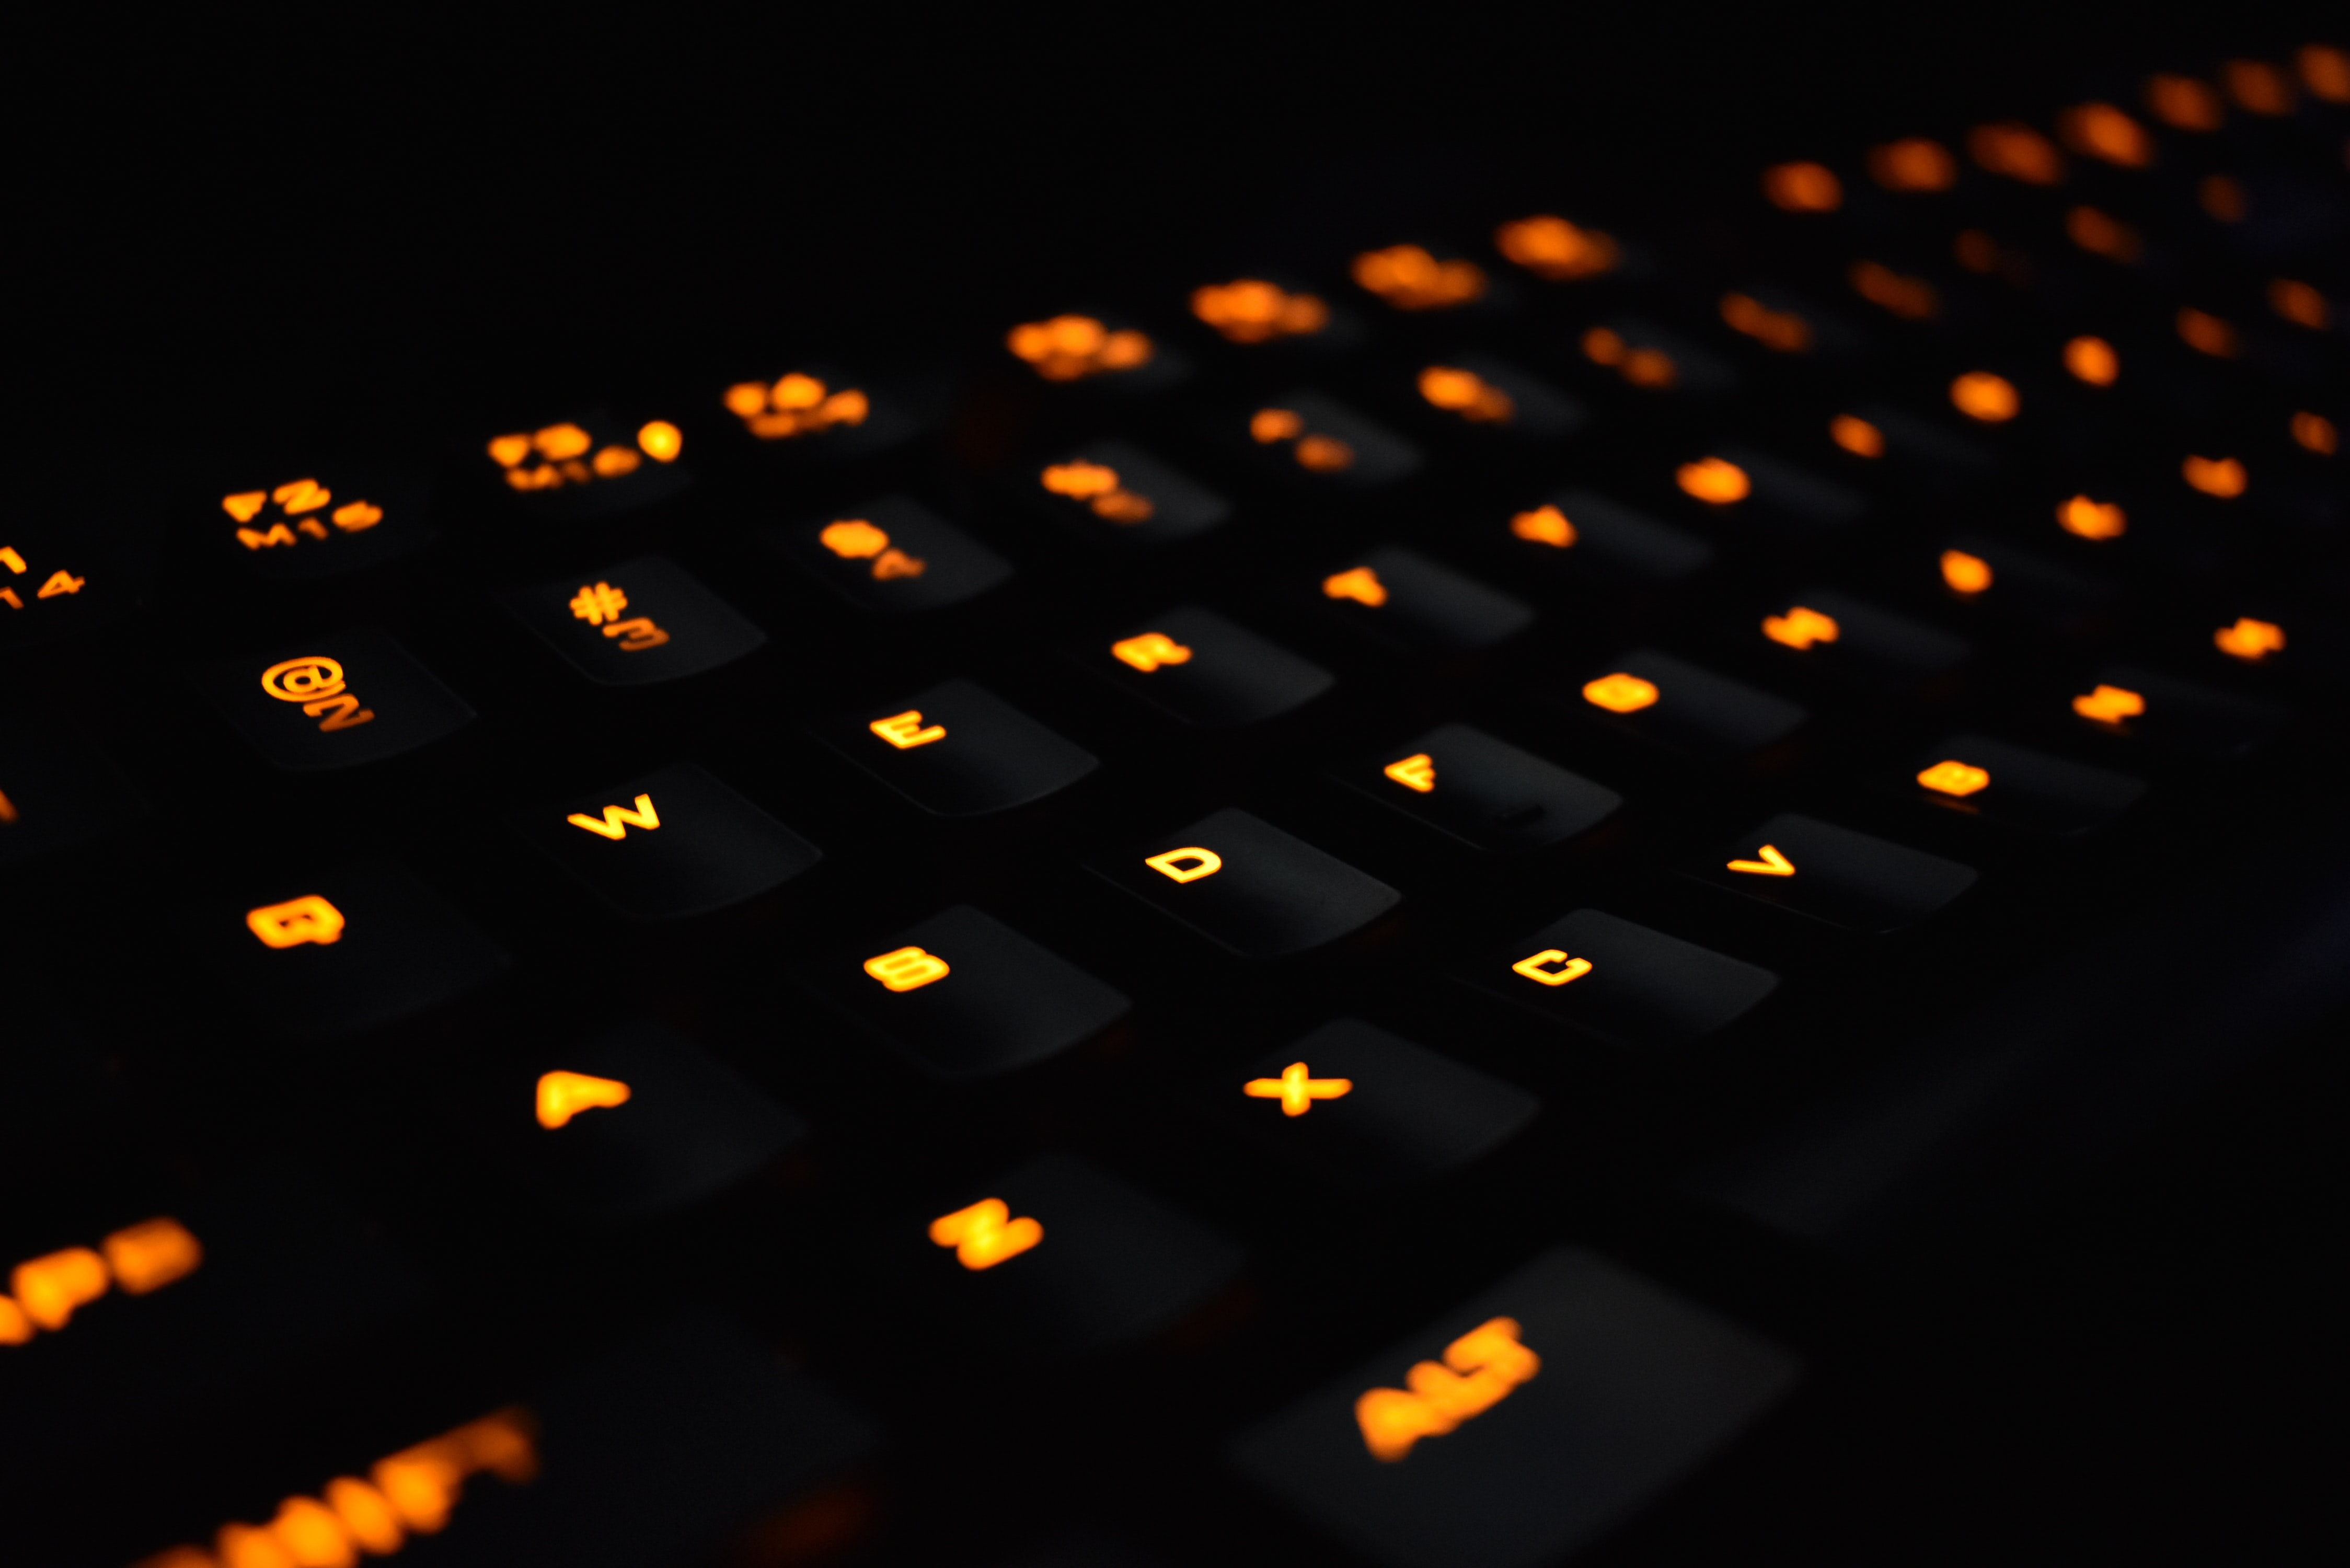 closeup photography of mechanical computer keyboard